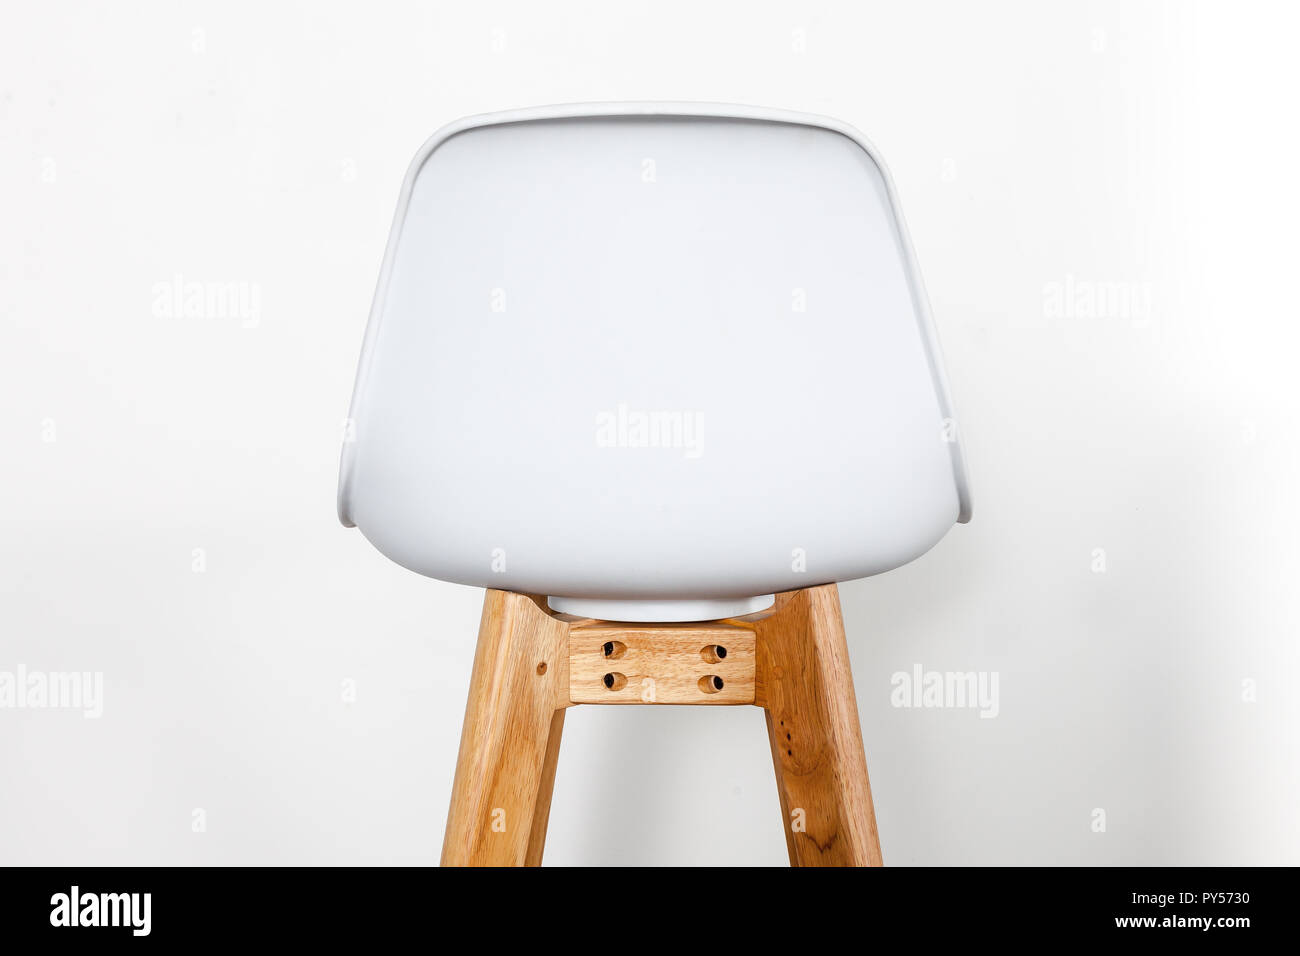 back of a white footstool - Stock Image